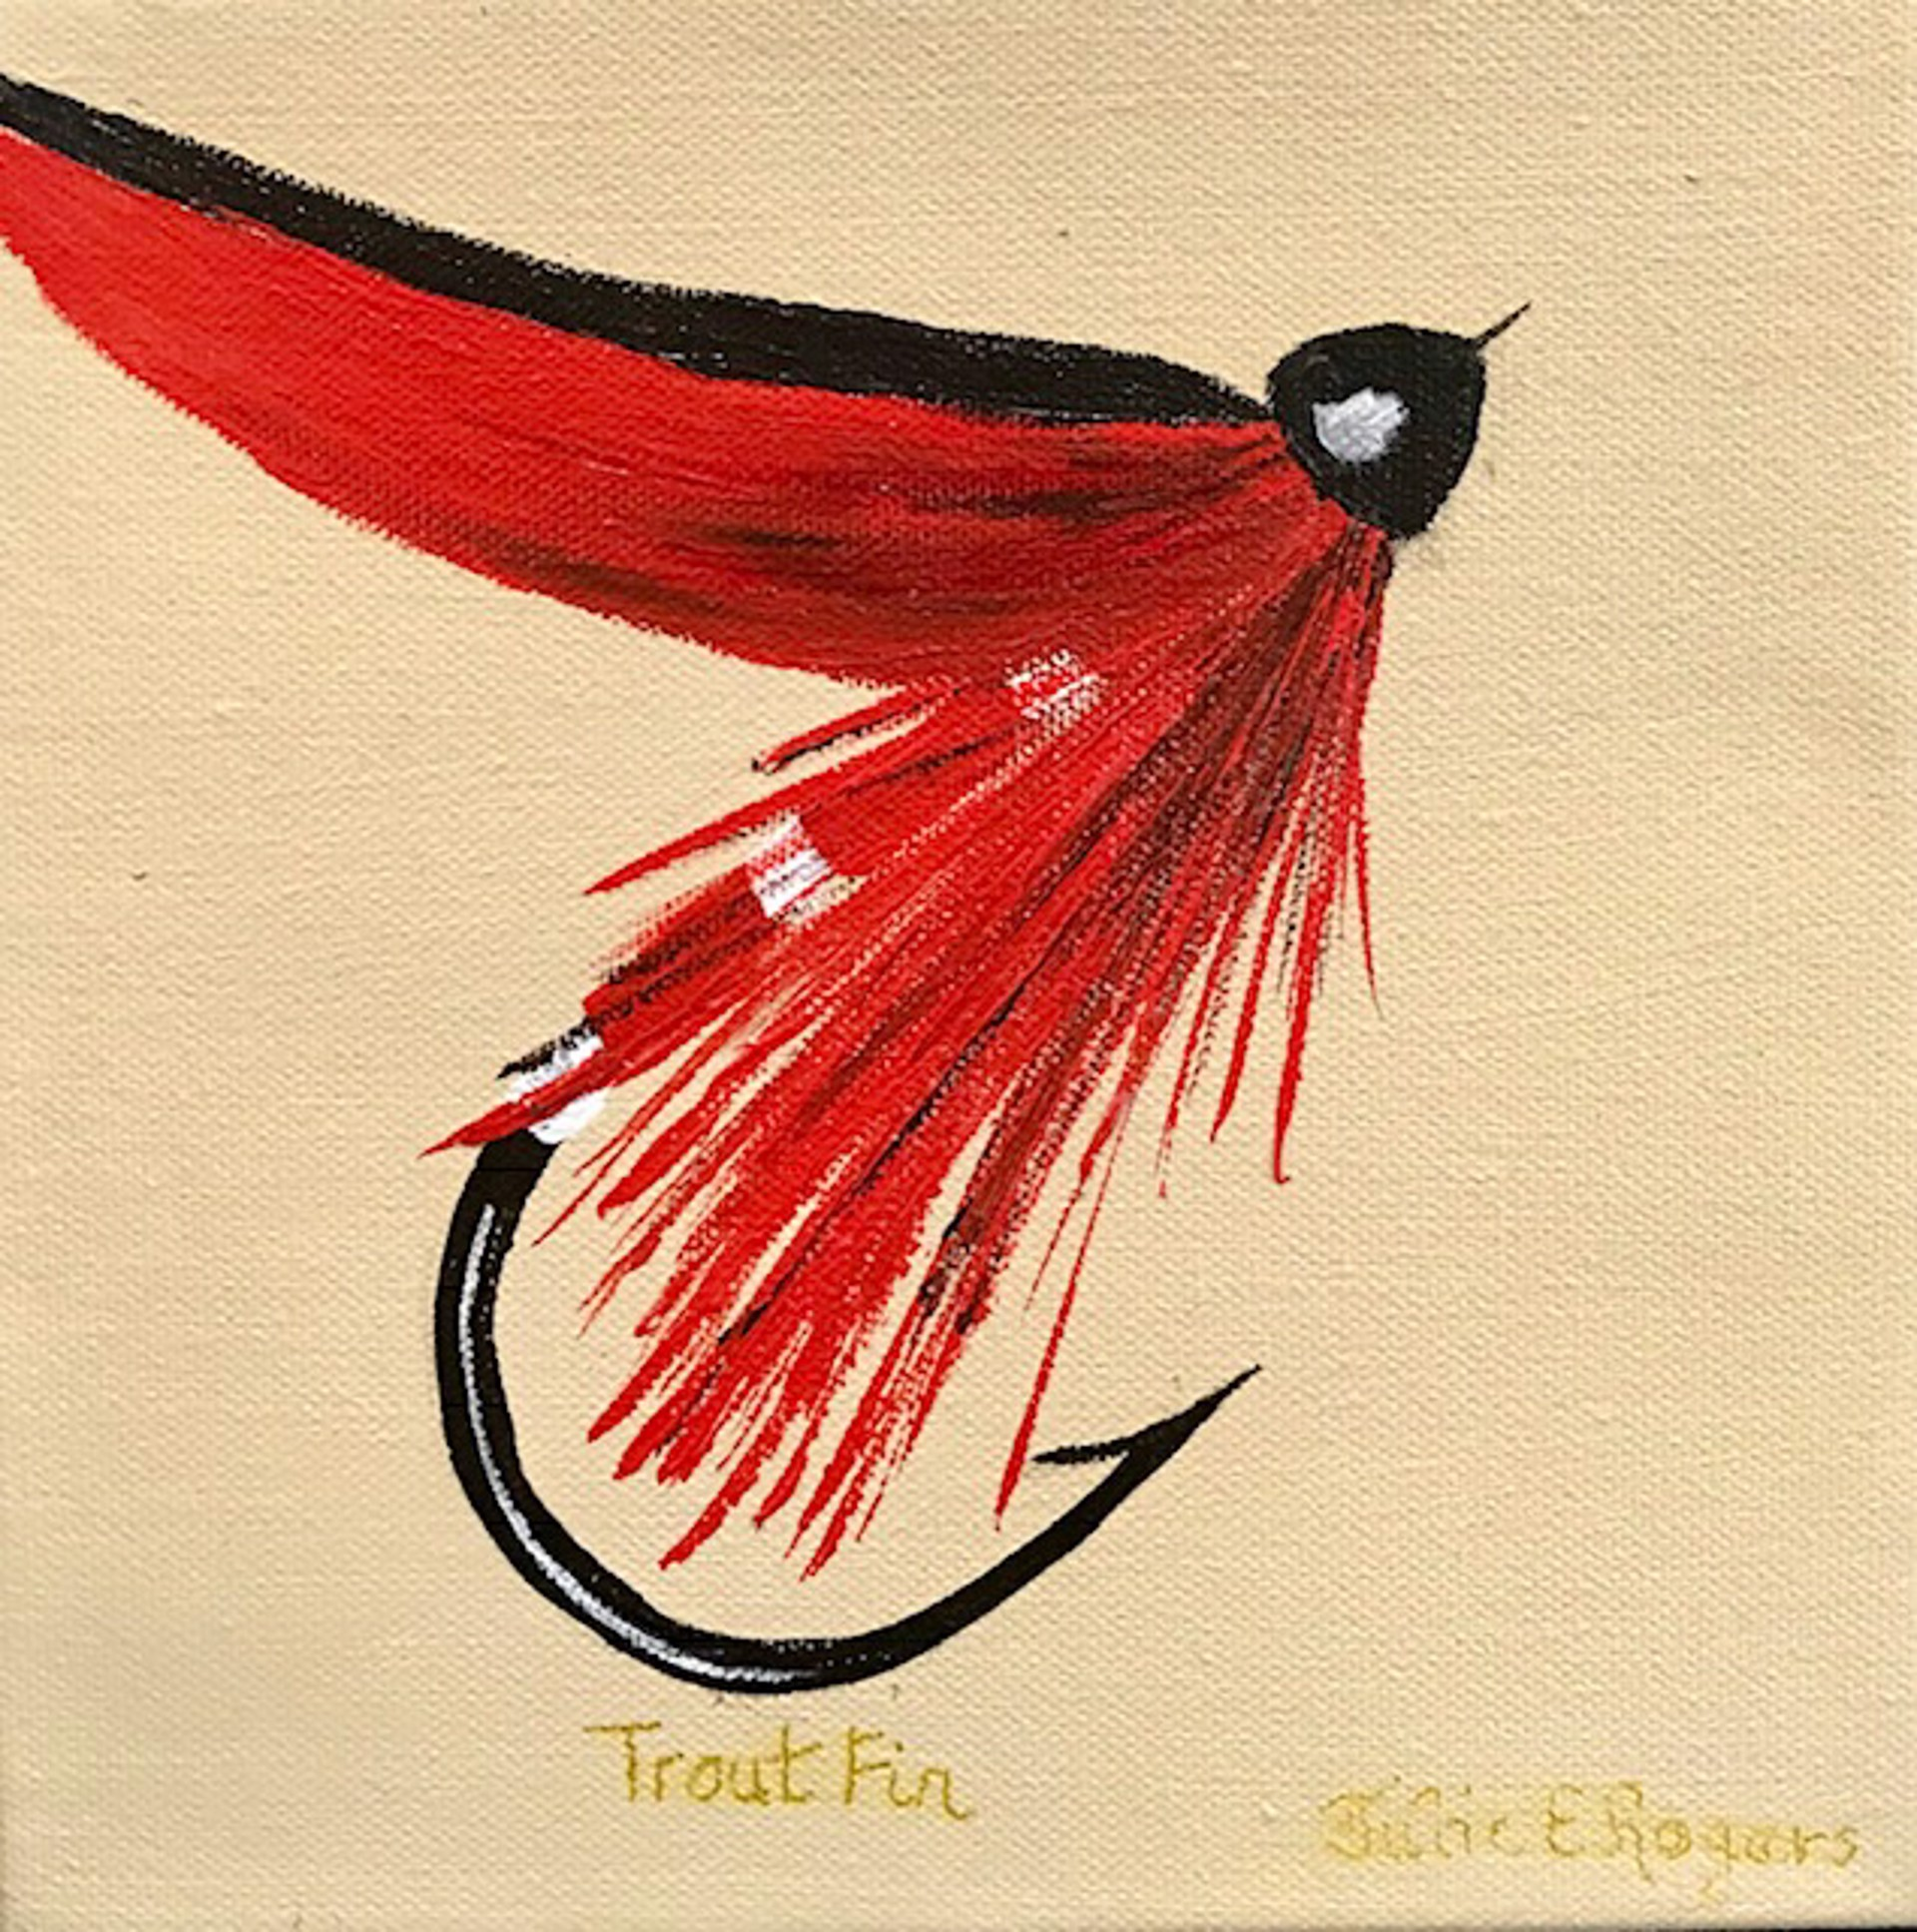 Trout Fin Fly by Julie Rogers